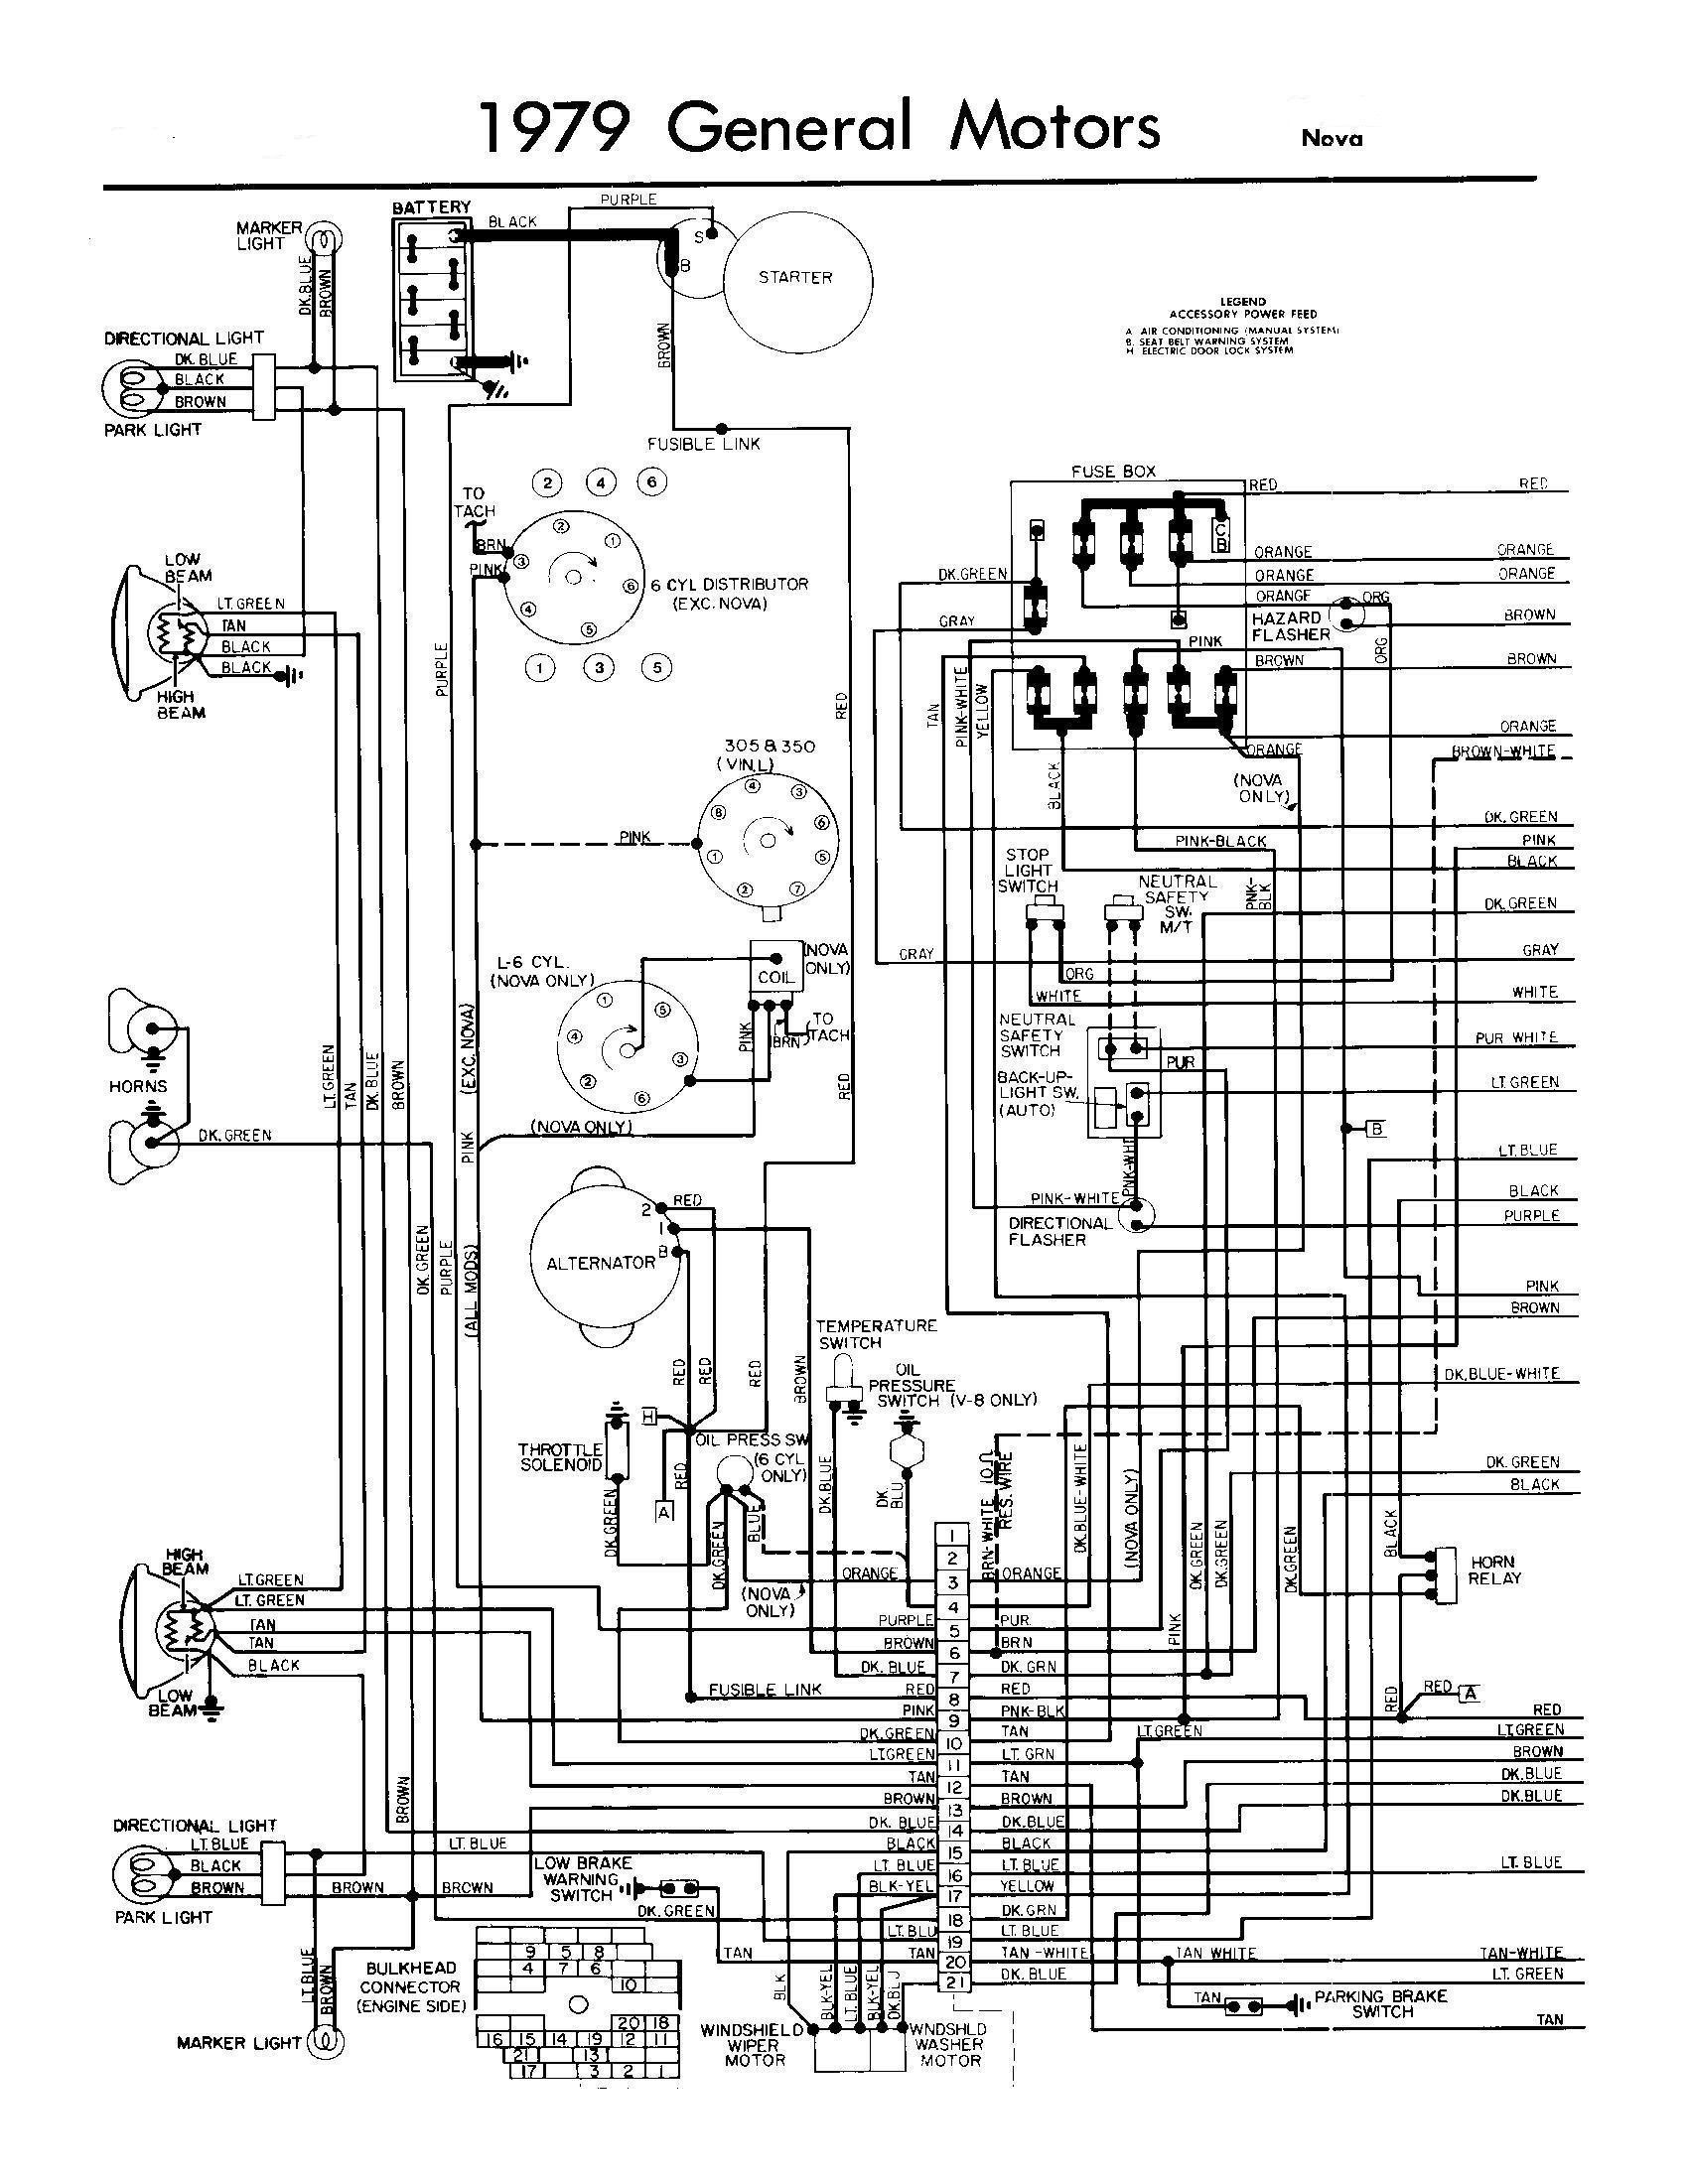 1969 Camaro Fuse Box Trusted Wiring Diagram 1997 78 Nova Schematic Diagrams 1994